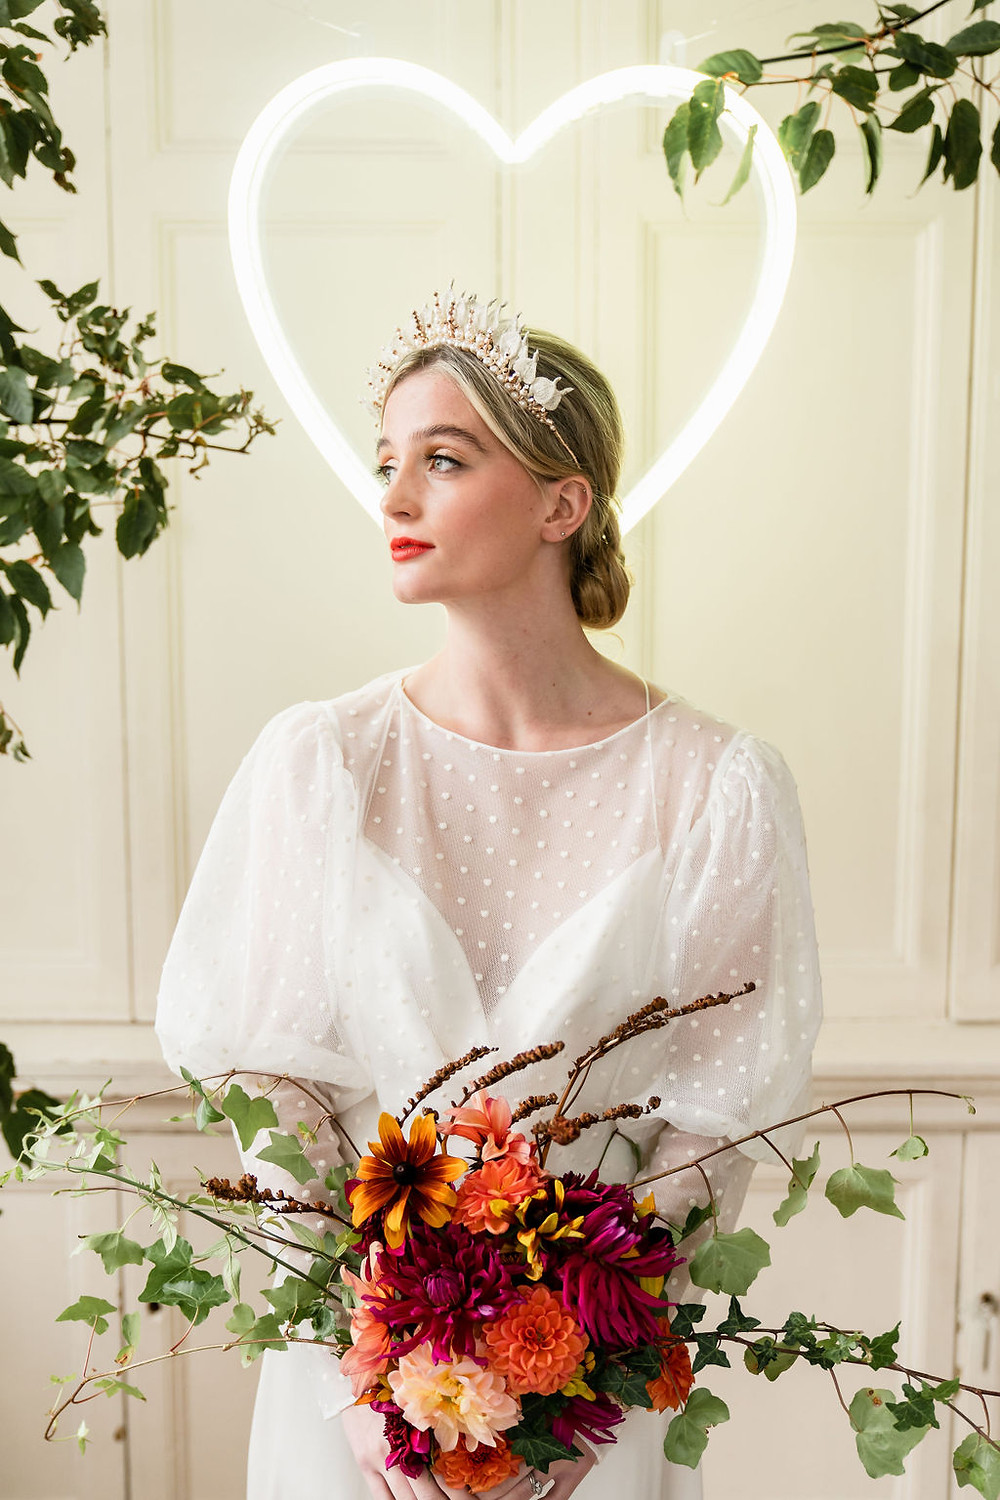 Bride stands in front of neon heart holding a pink, peach and apricot Dahlia bouquet wearing a statement gold and silver bridal crown